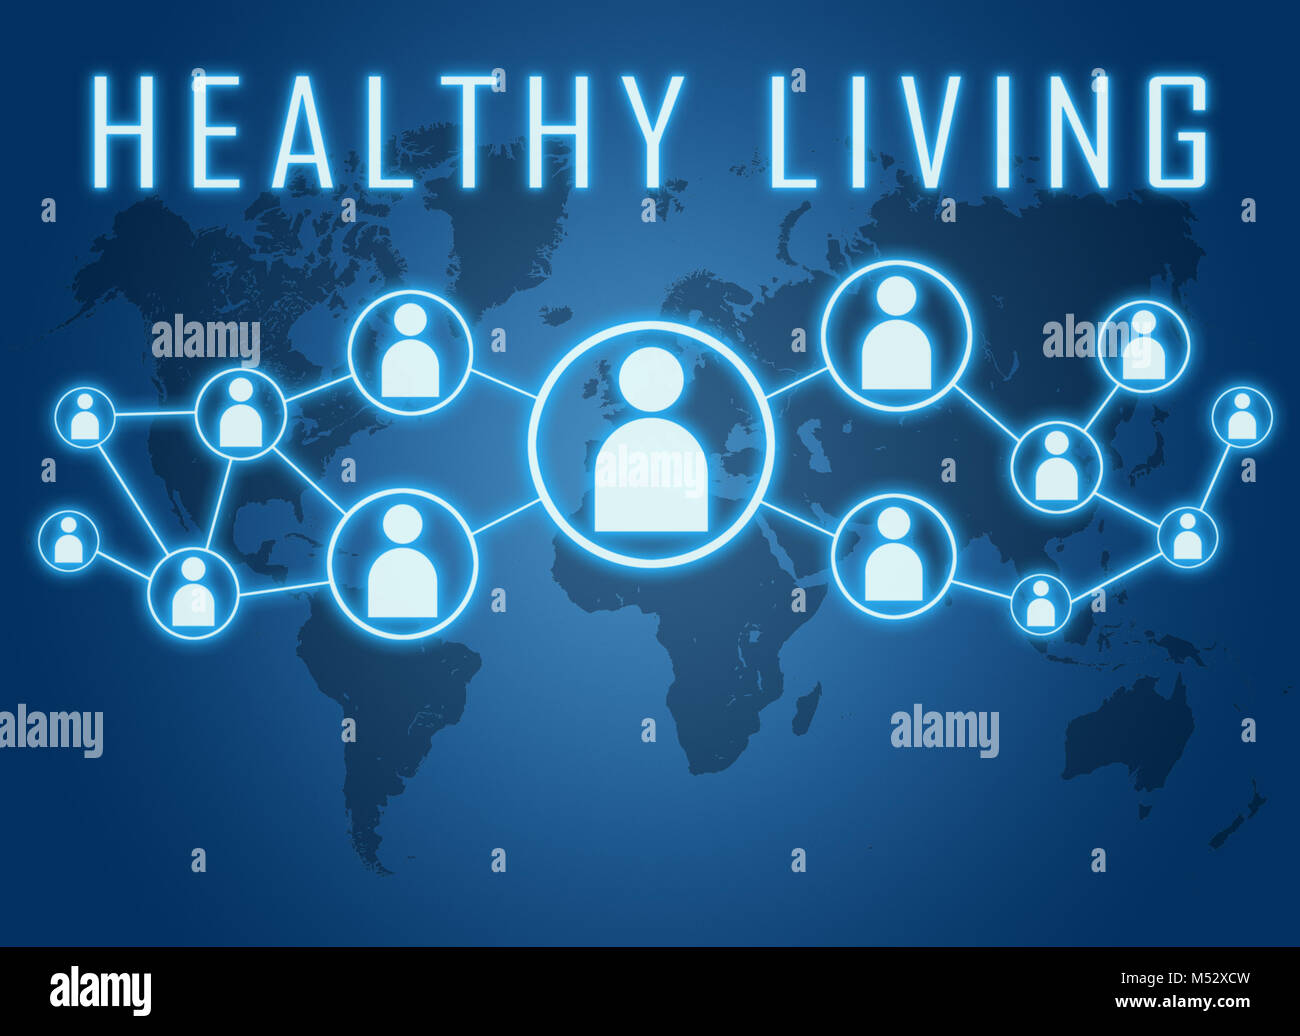 Healthy living text concept - Stock Image